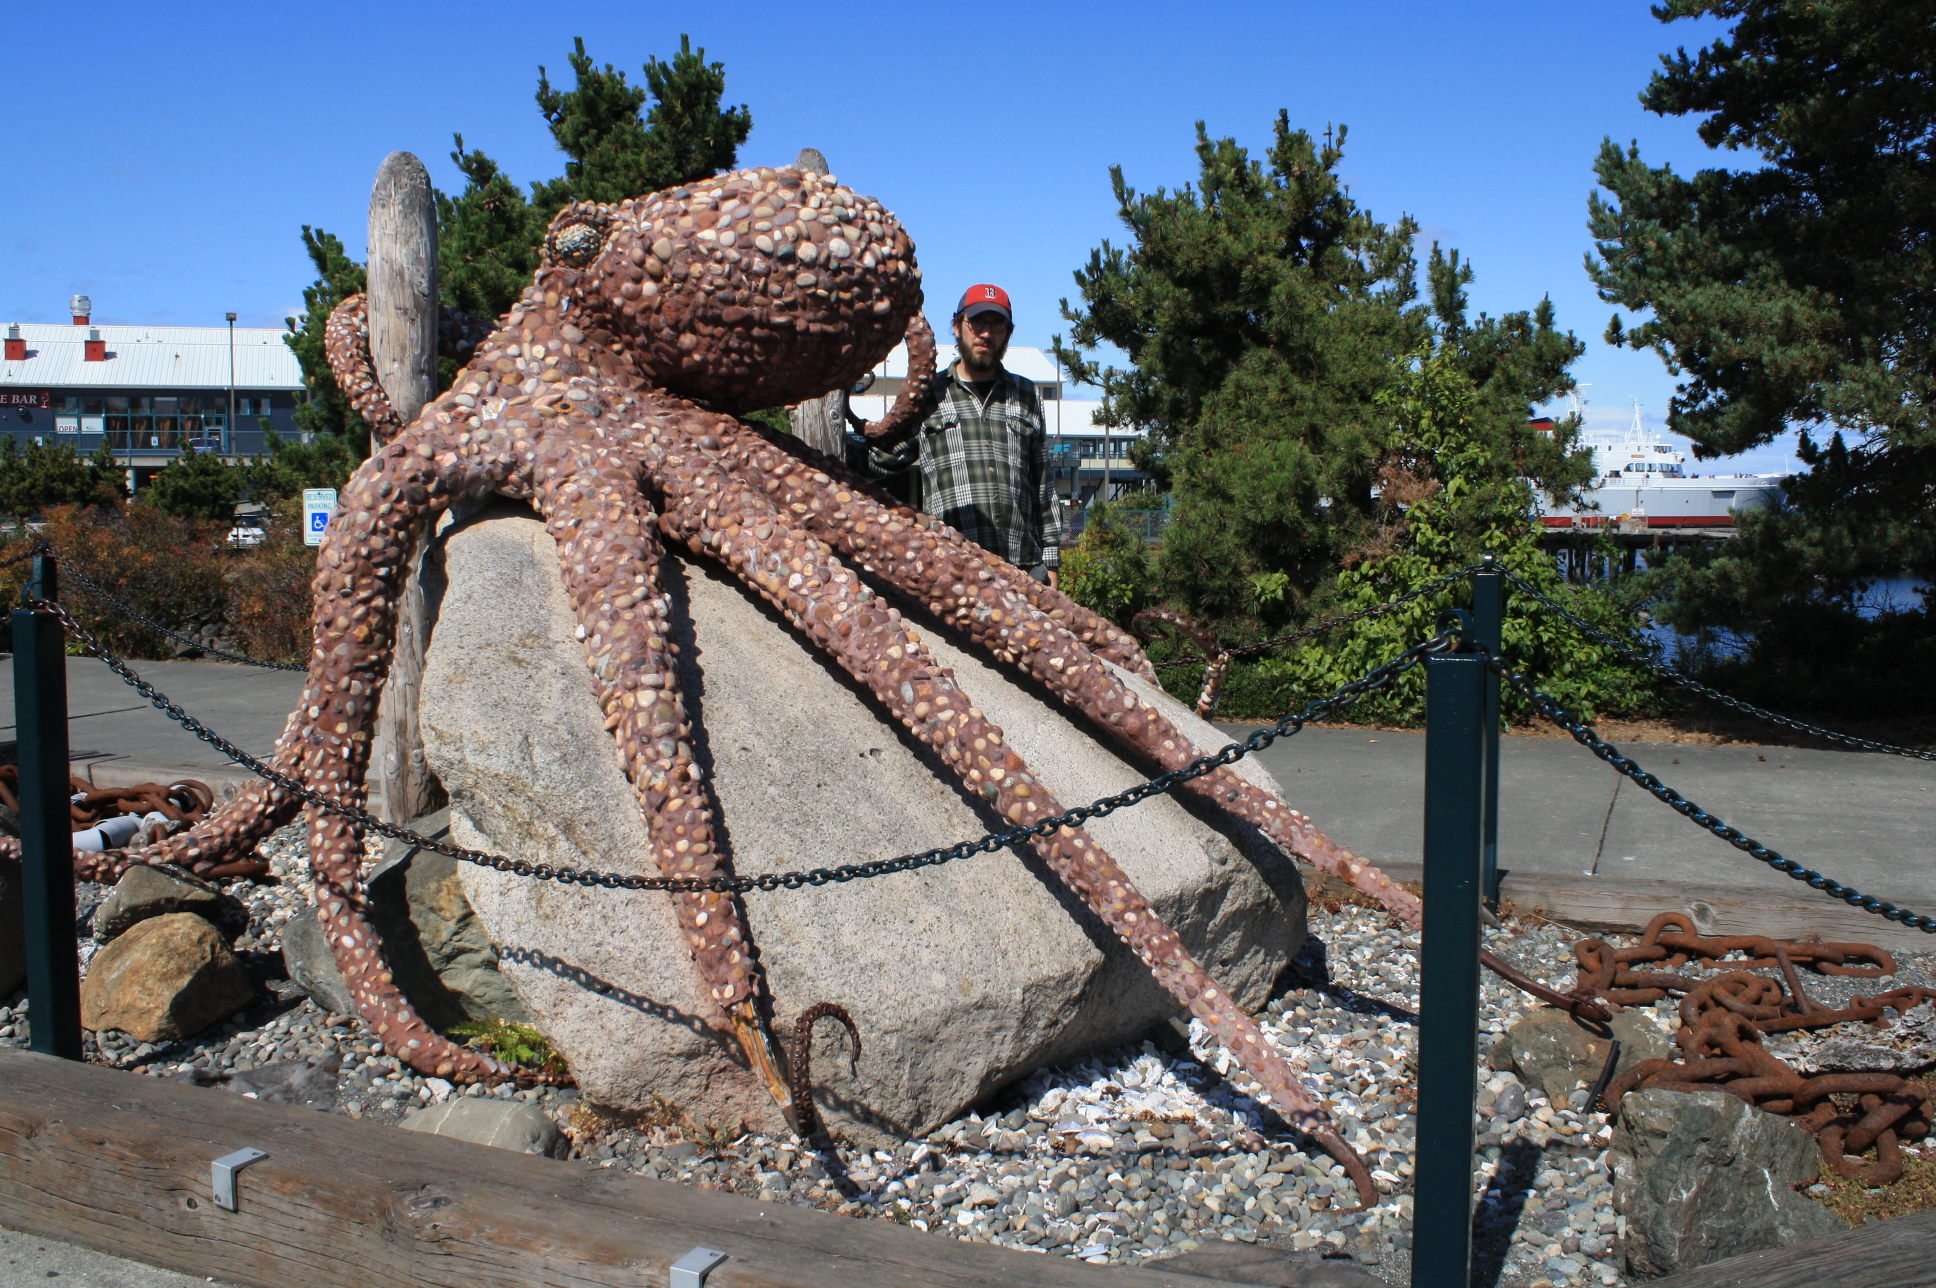 Rocktopus in Port Townsend